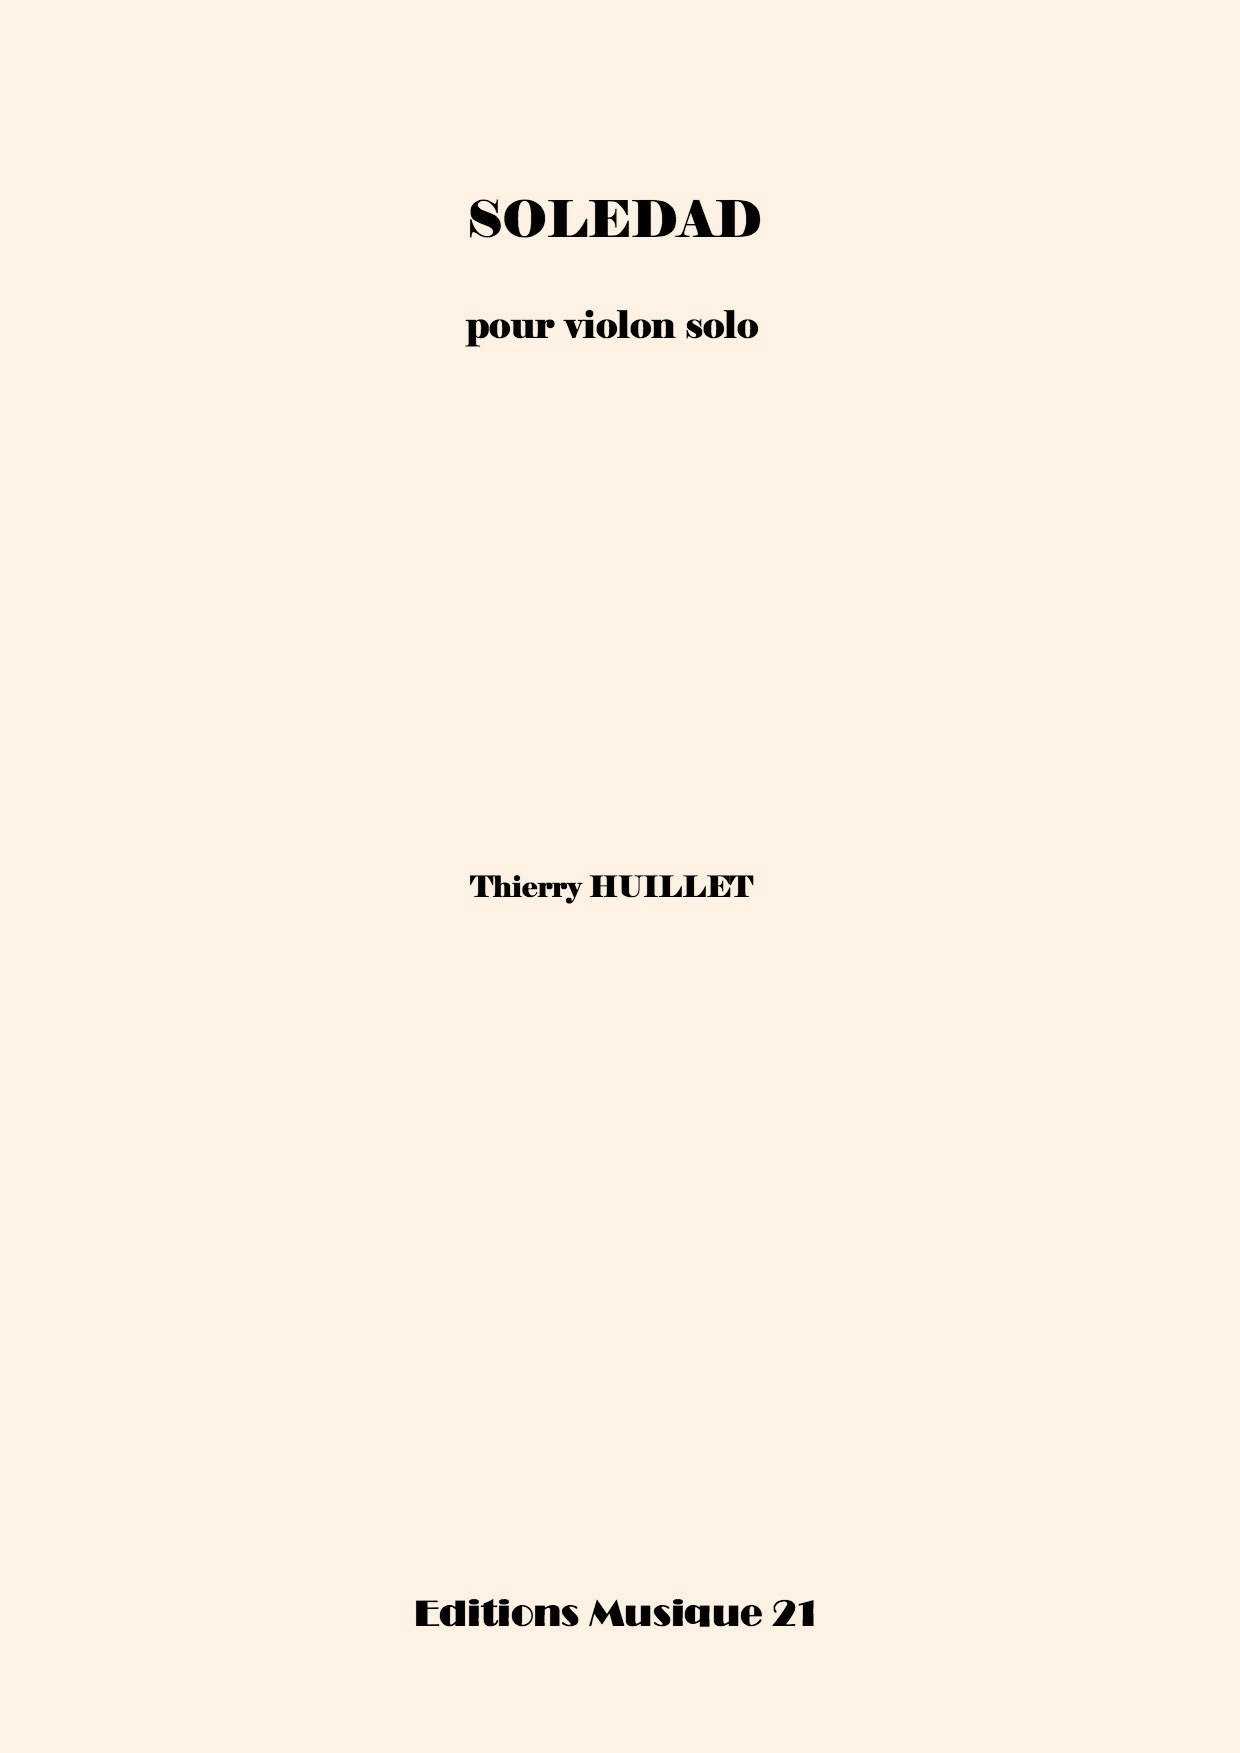 Thierry HUILLET – Soledad, For Solo Violin